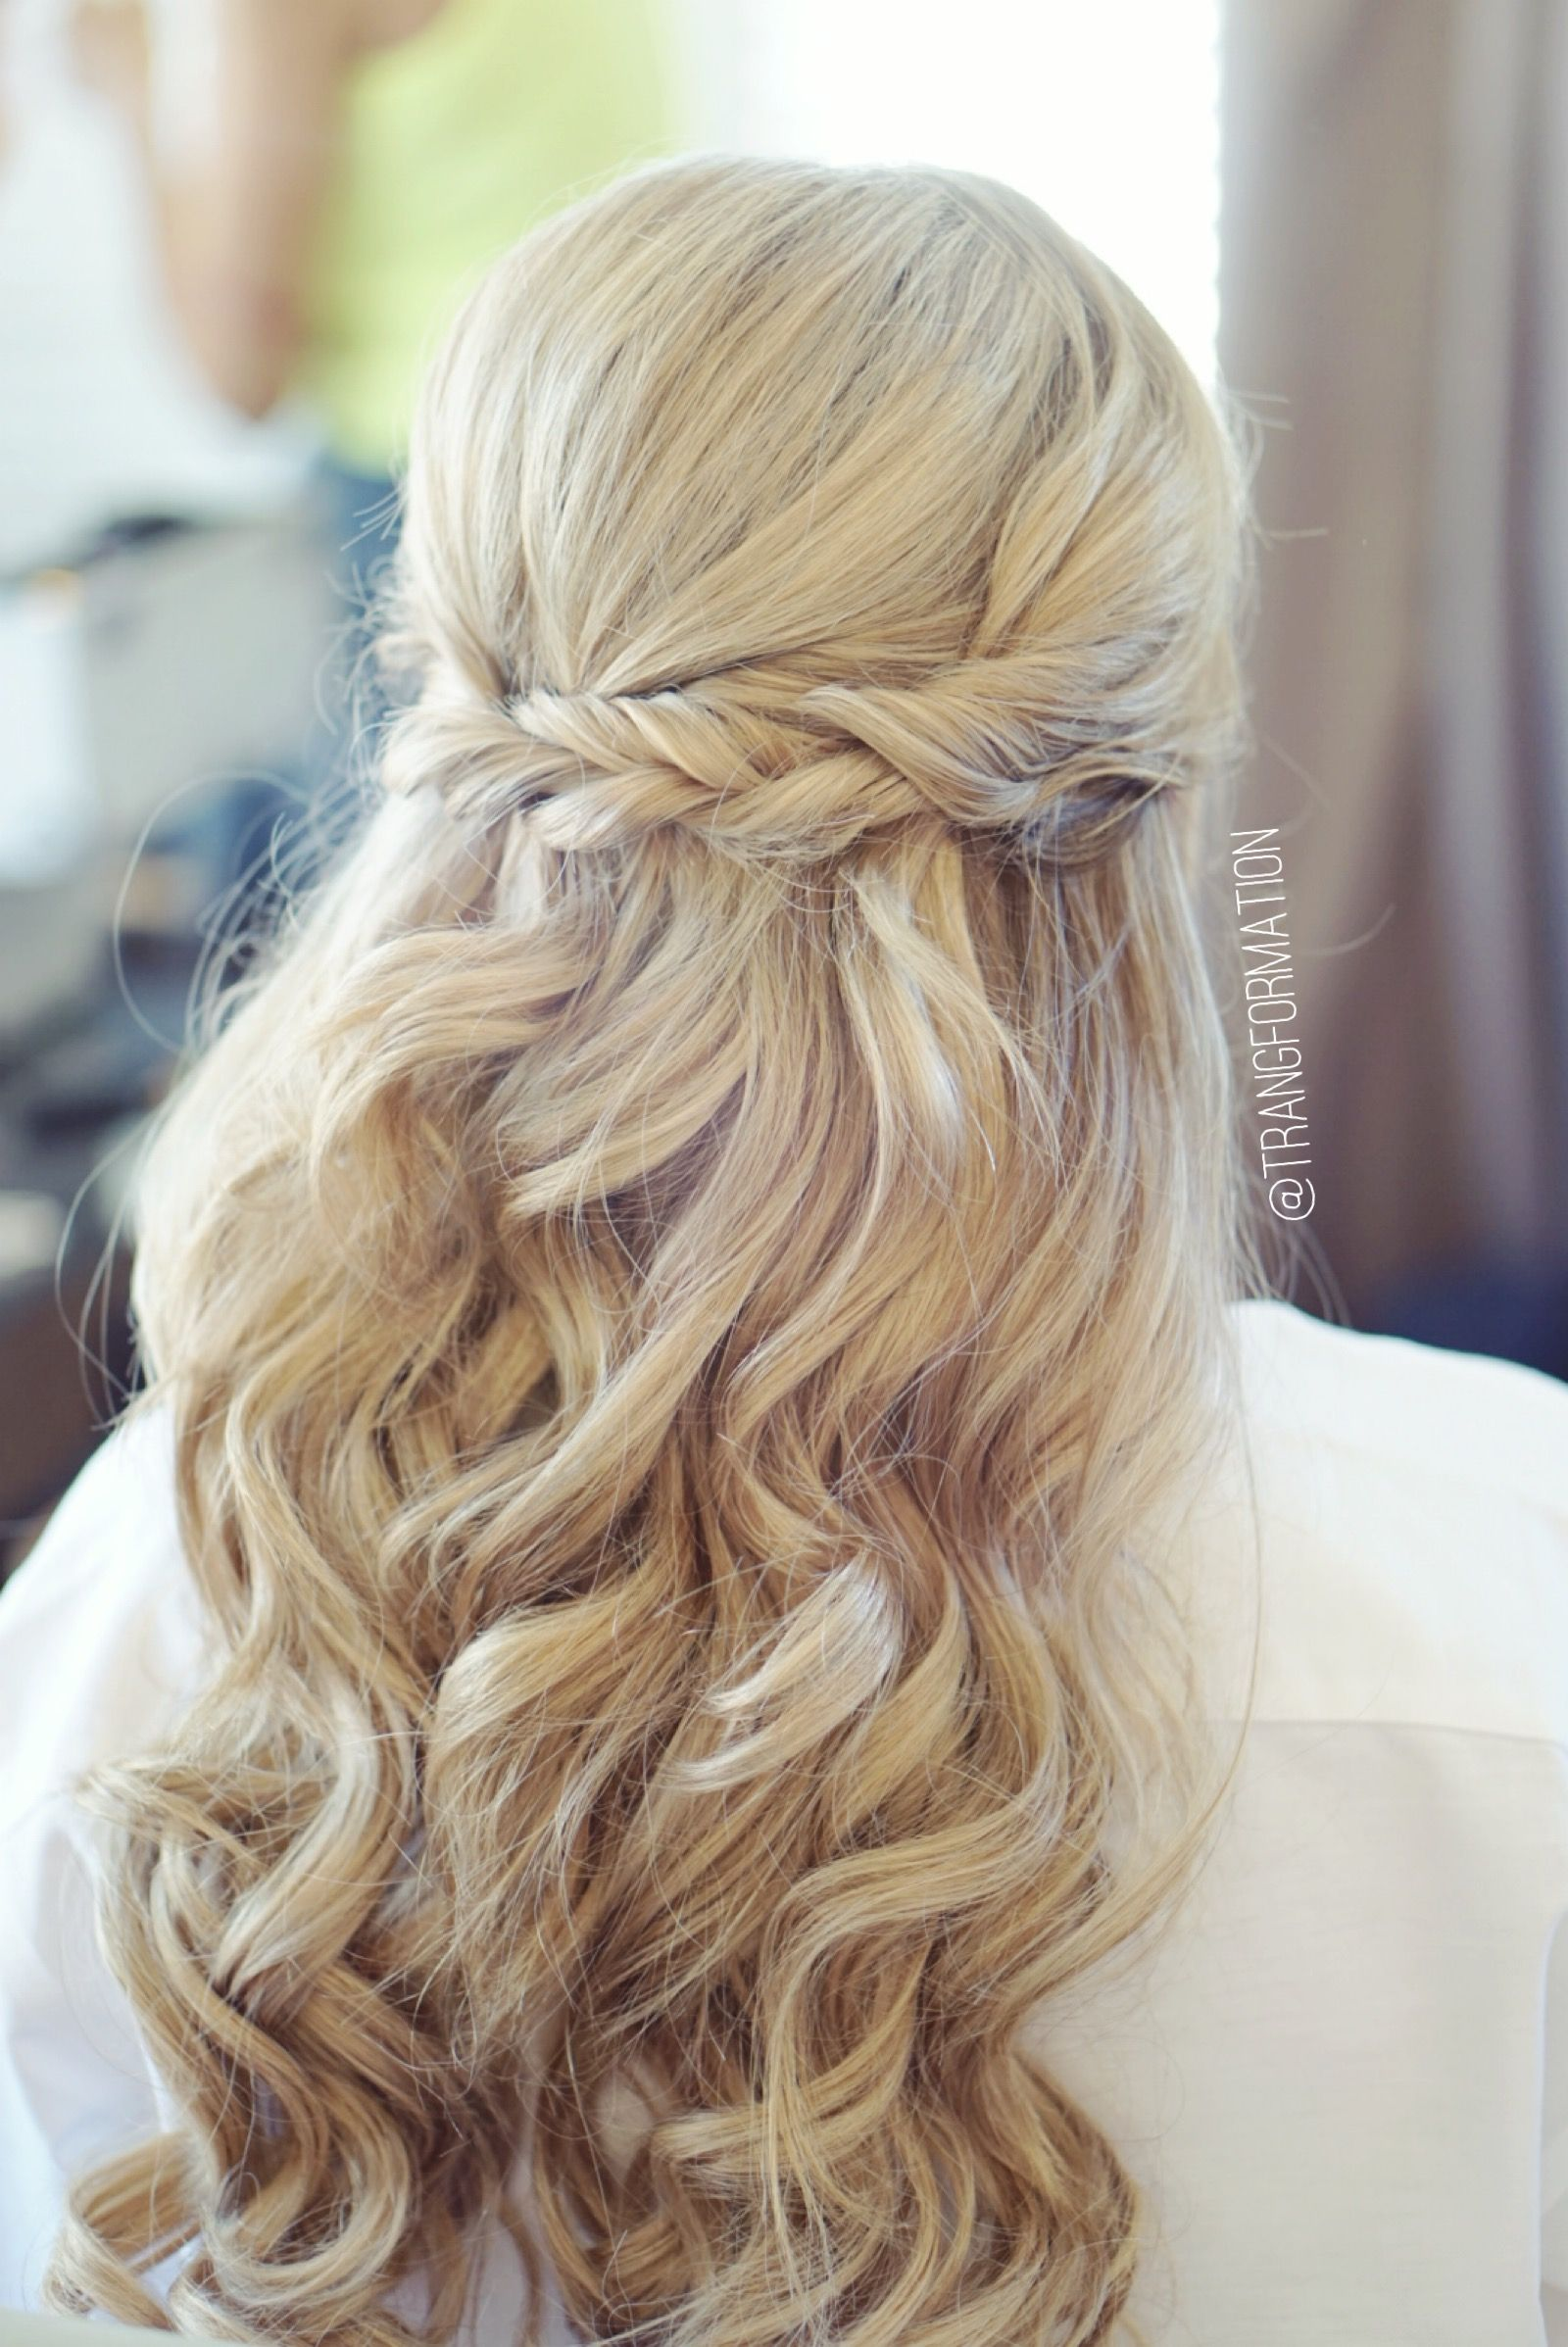 Wedding Hairstyles Hair Pinterest Wedding Hairstyles Prom